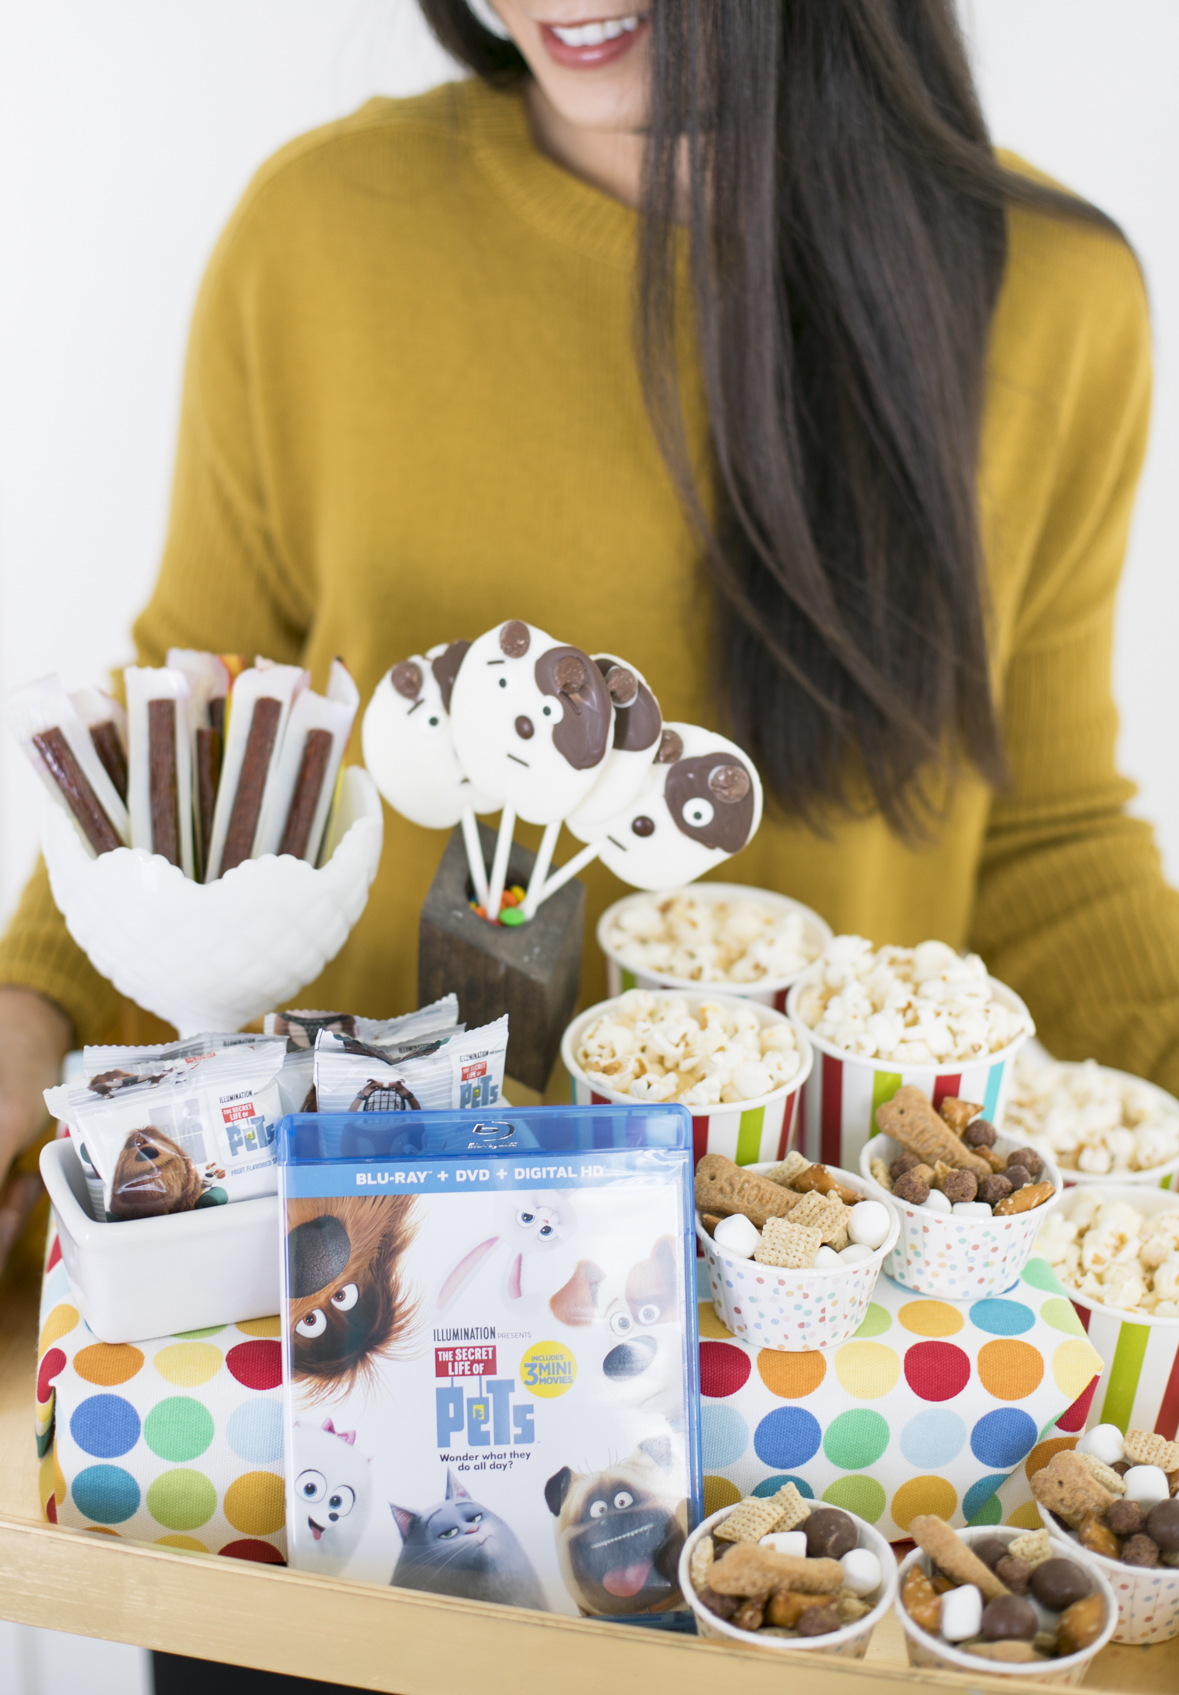 The Secret Life of Pets Movie Party Snack Tray